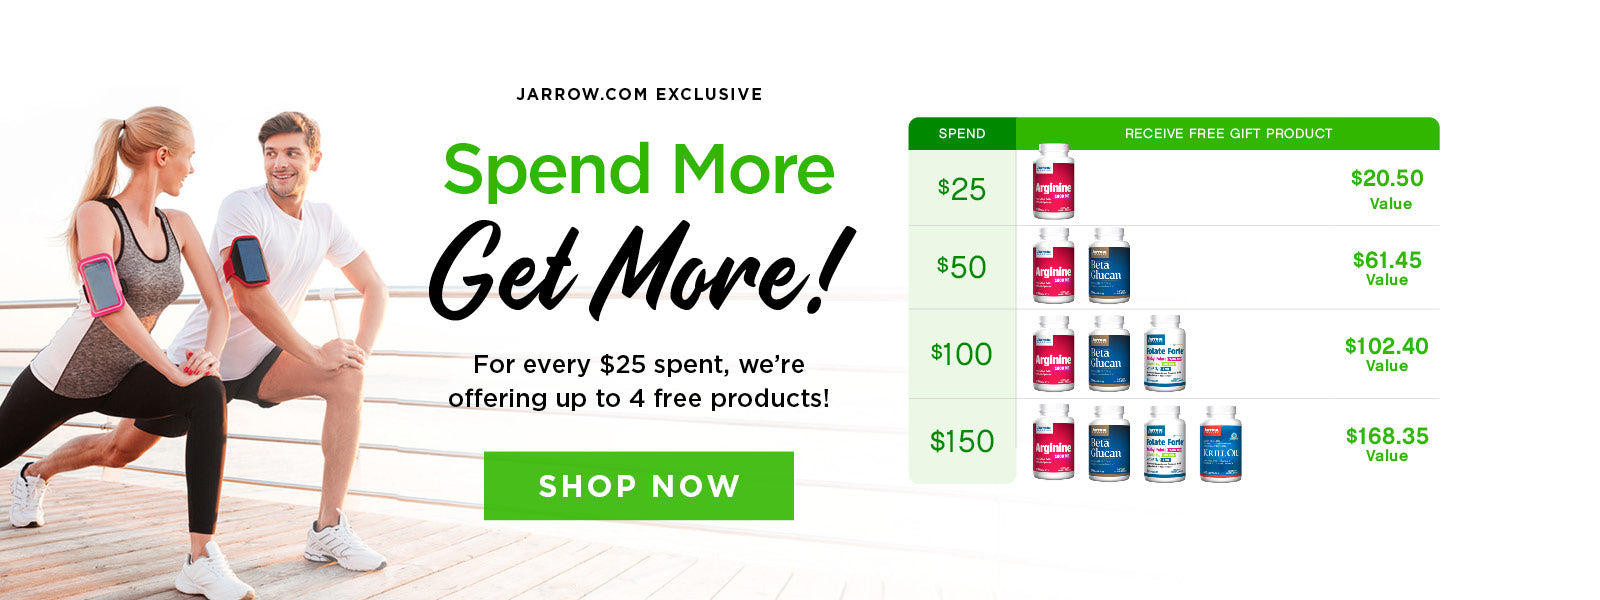 Spend More Get More! For every $25 you spend, we're offering up to 4 free products. Spend $150, and you'll receive the maximum gift offer of 4 free products.